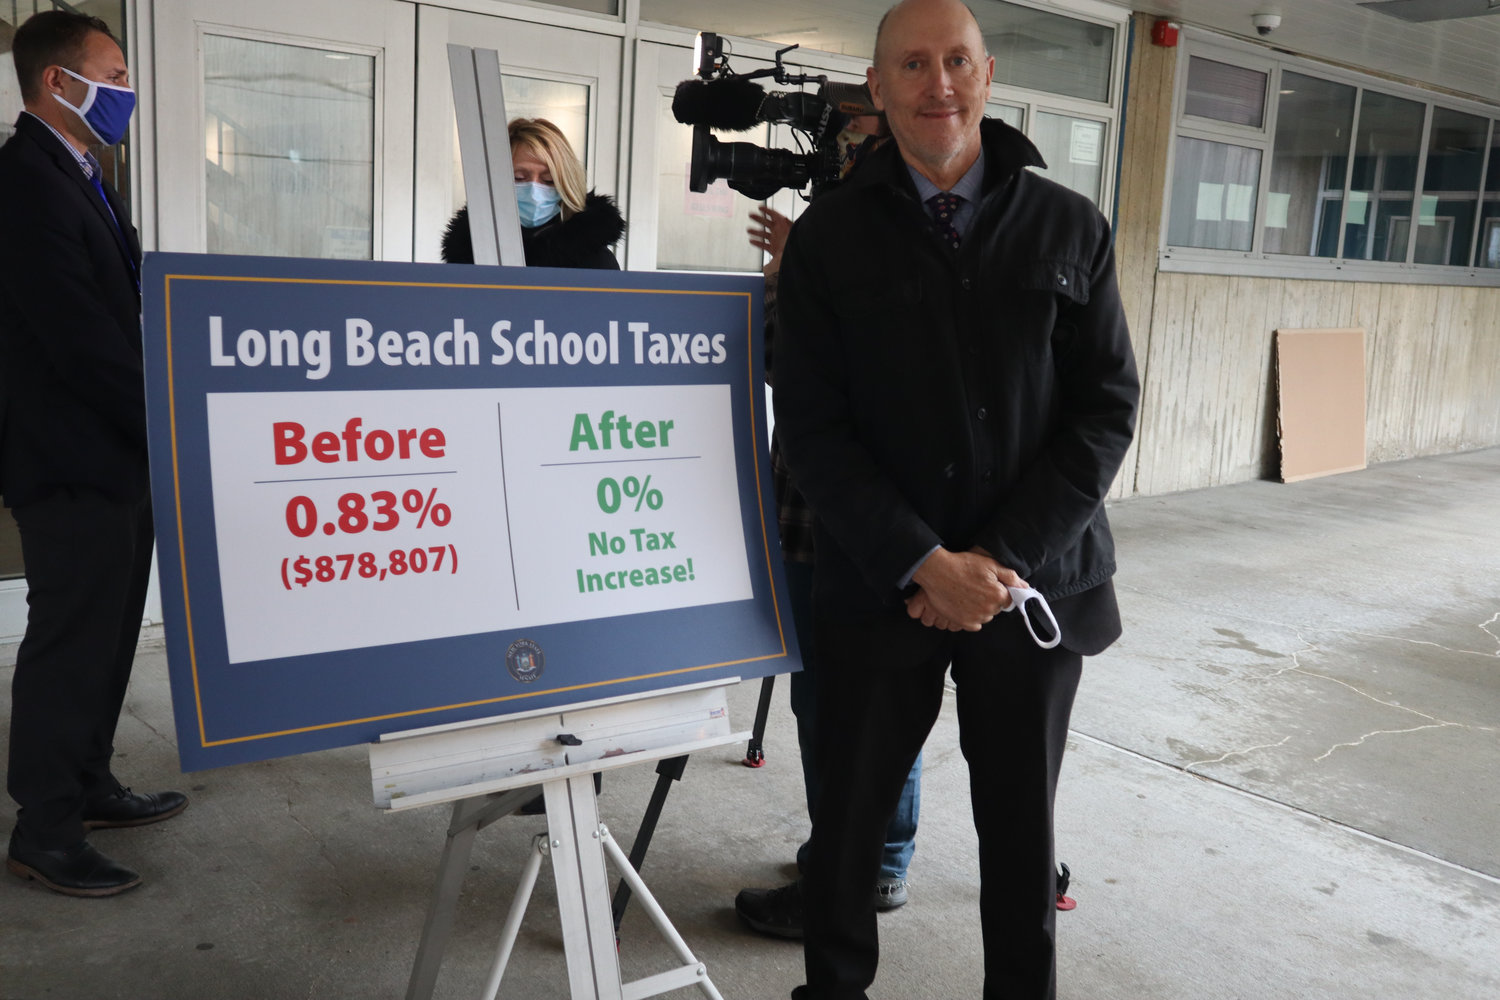 Michael DeVito, the district's assistant superintendent of finance and operations, has held budget presentations since January. Colleagues praised his fiscal responsible budget for the 2021-22 school year.